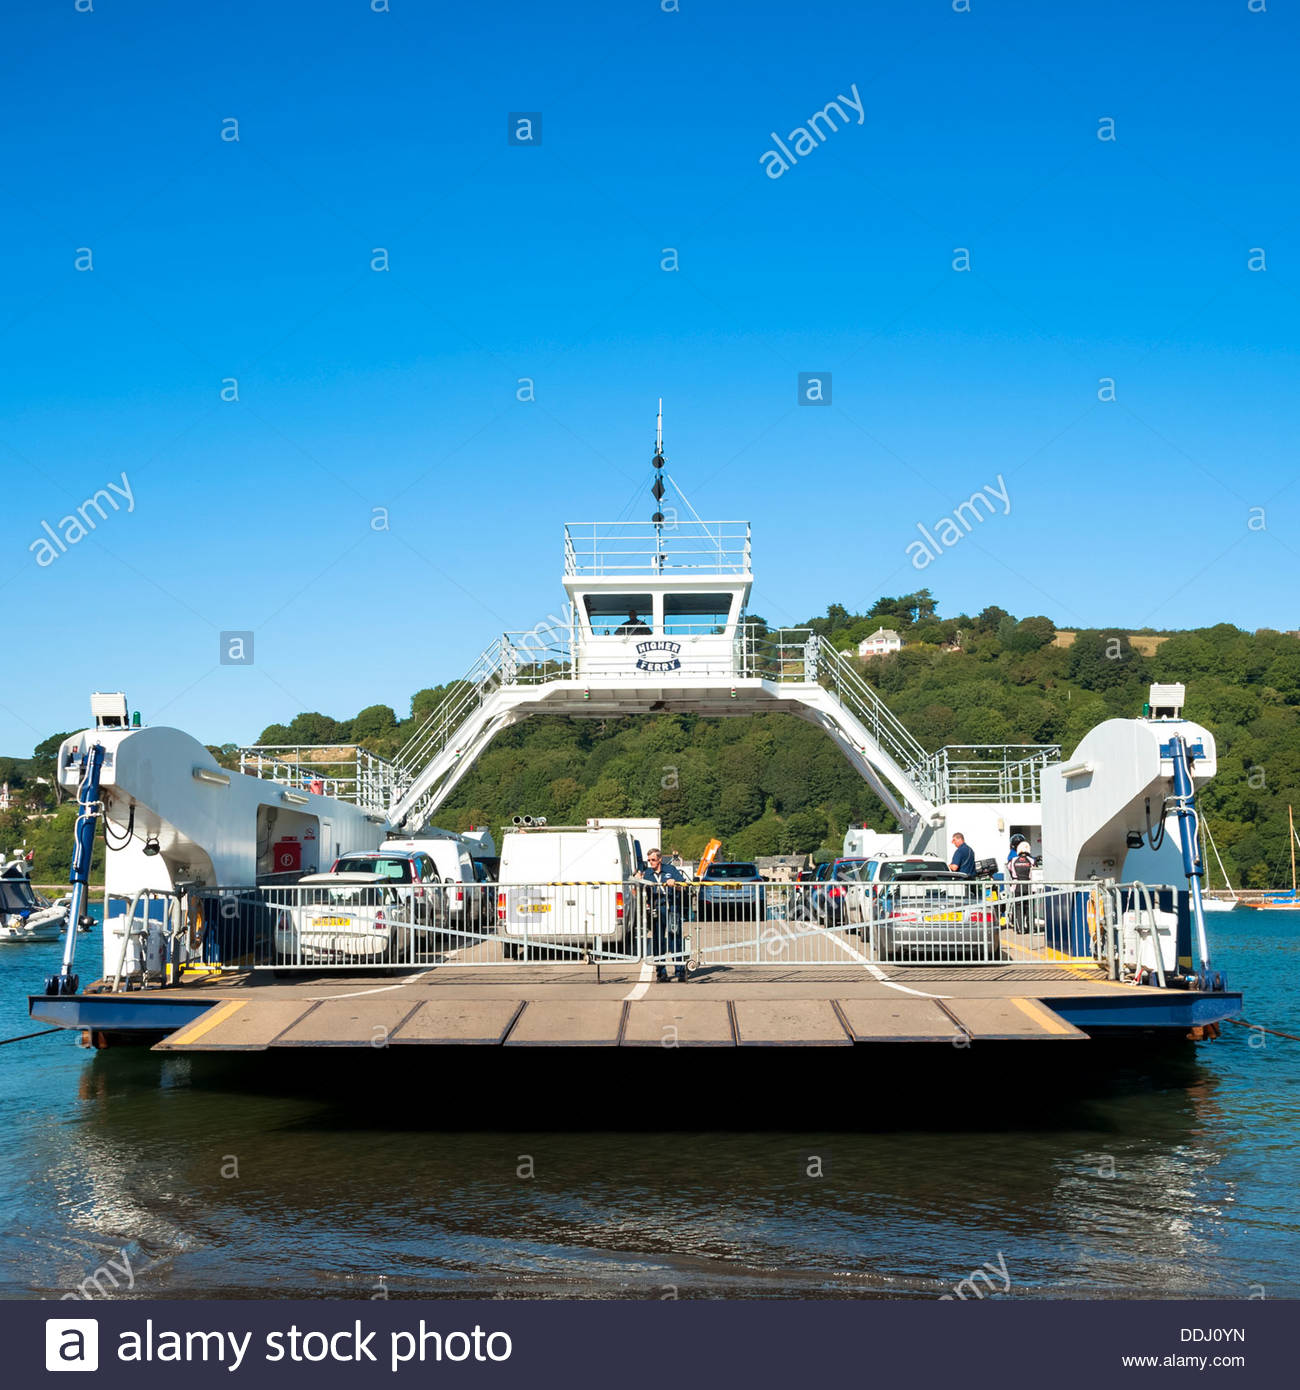 Car ferry on the river at Dartmouth, Devon, UK. Kingswear upper ferry. - Stock Image